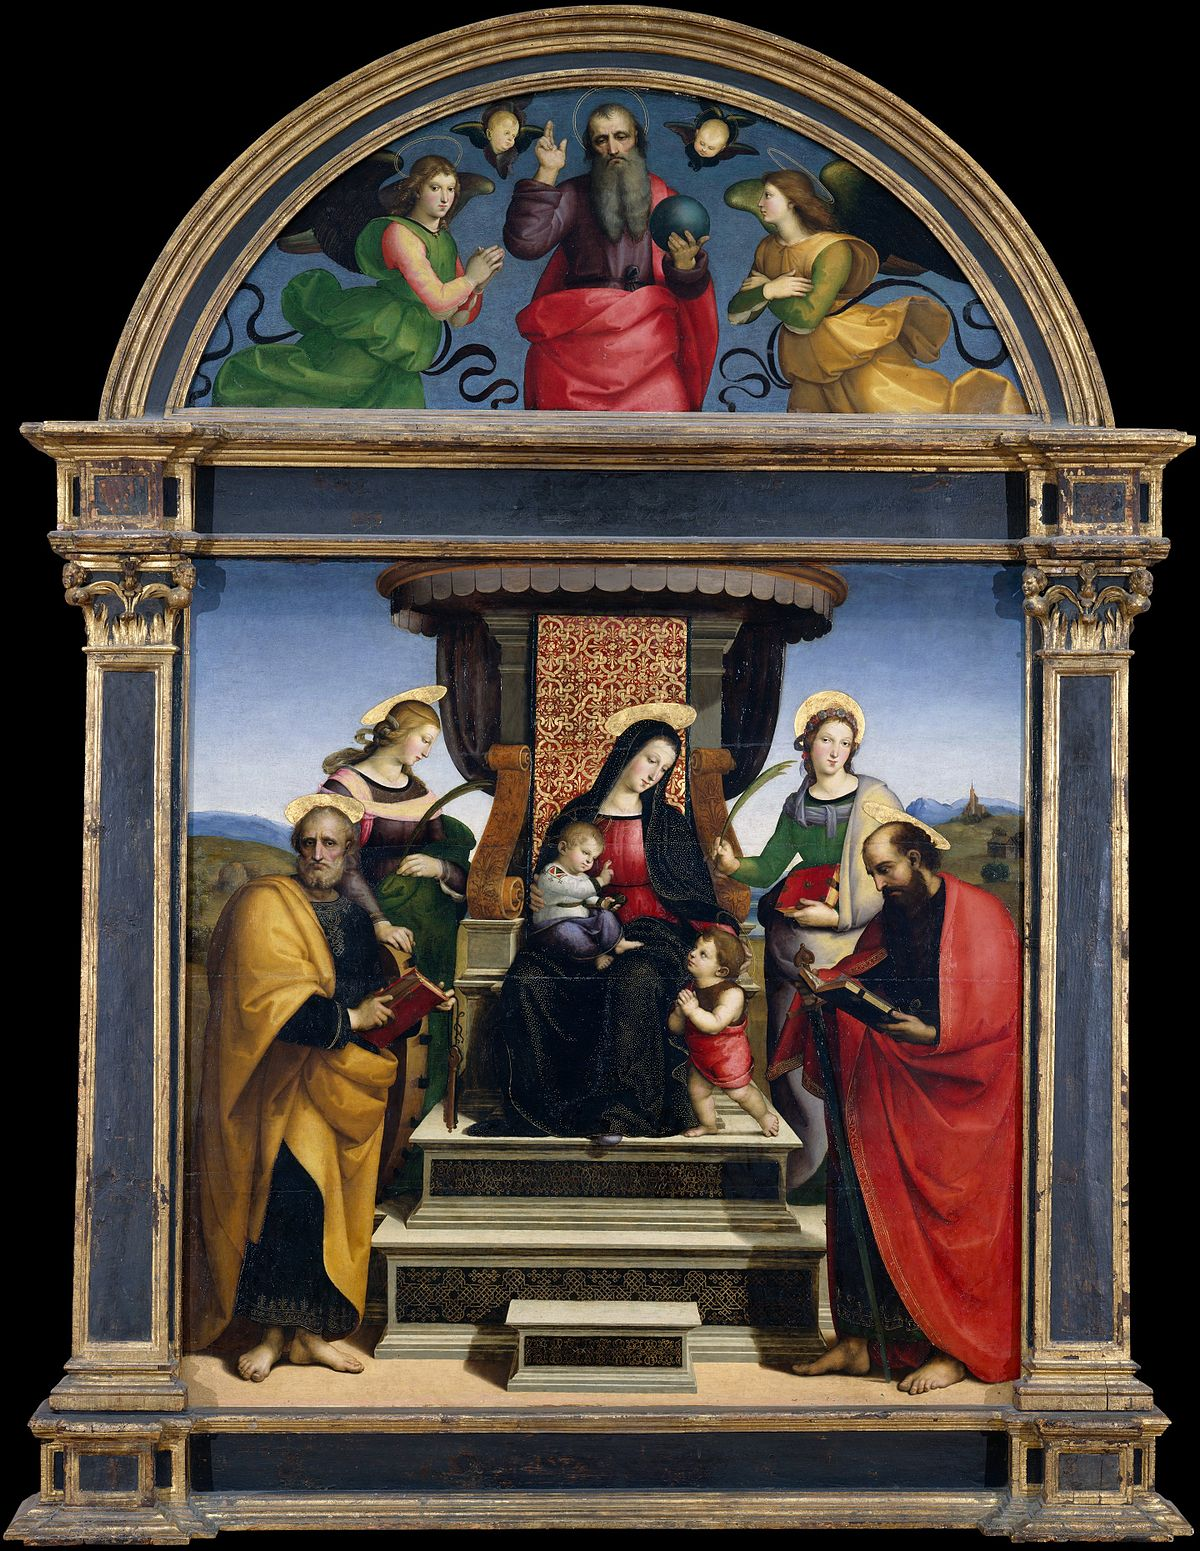 Separation Lame De Bois madonna and child enthroned with saints (raphael) - wikipedia